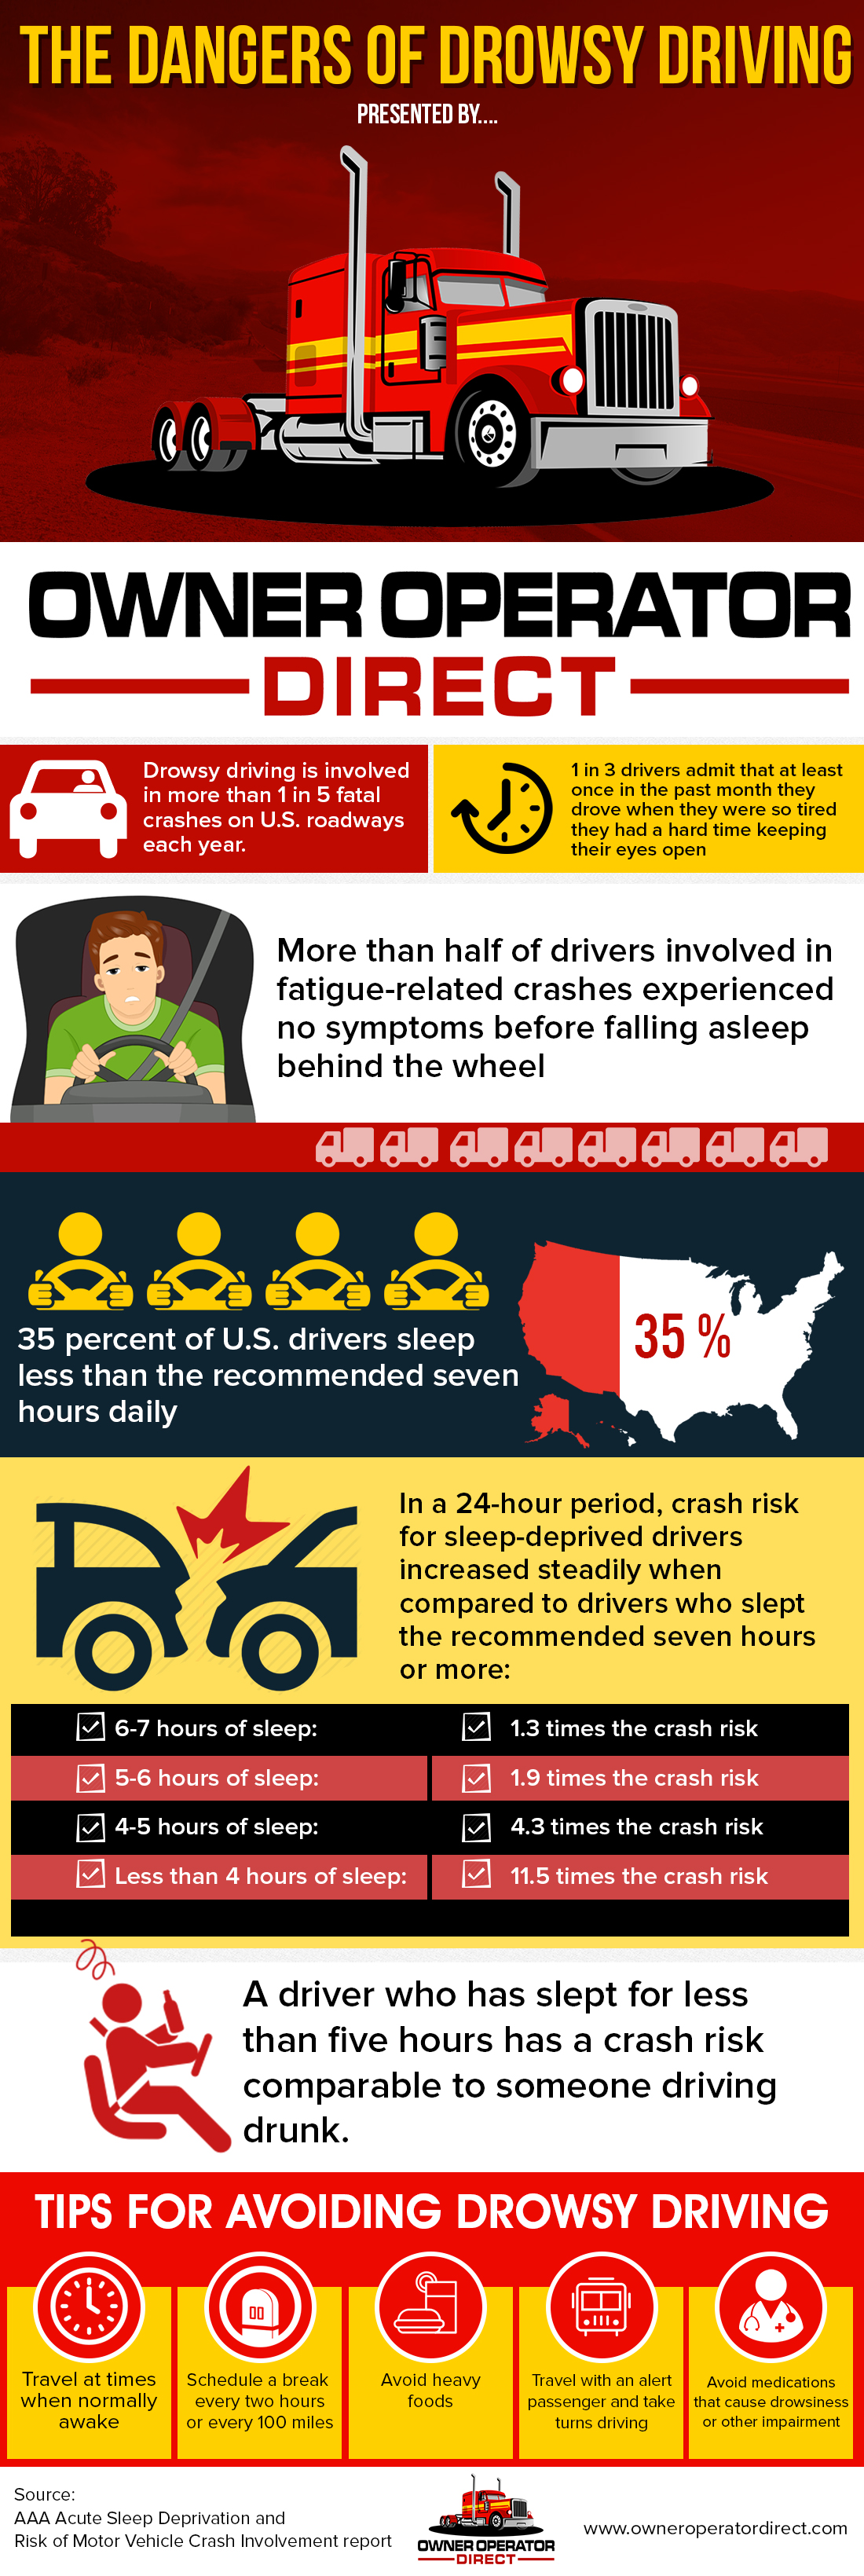 Drowsy Driving Infographic presented by https://www.owneroperatordirect.com